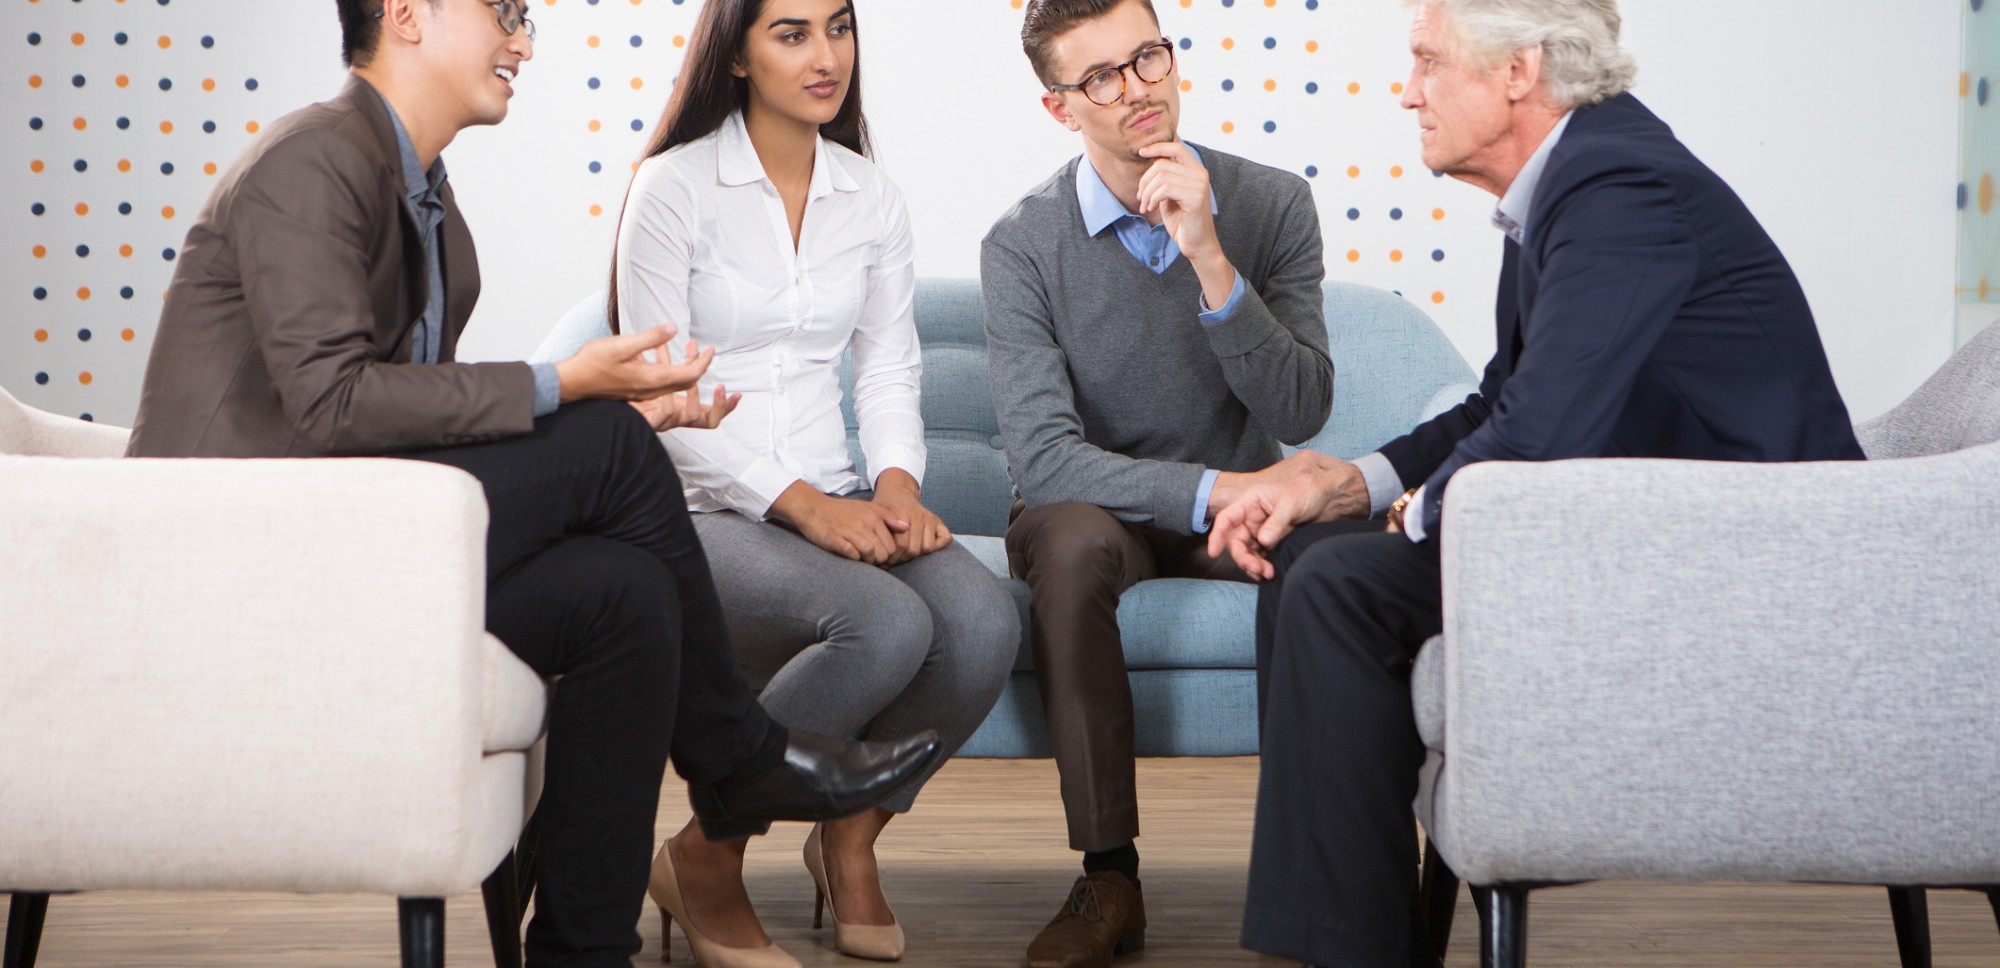 ACCIONA Job The importance of listening to employees